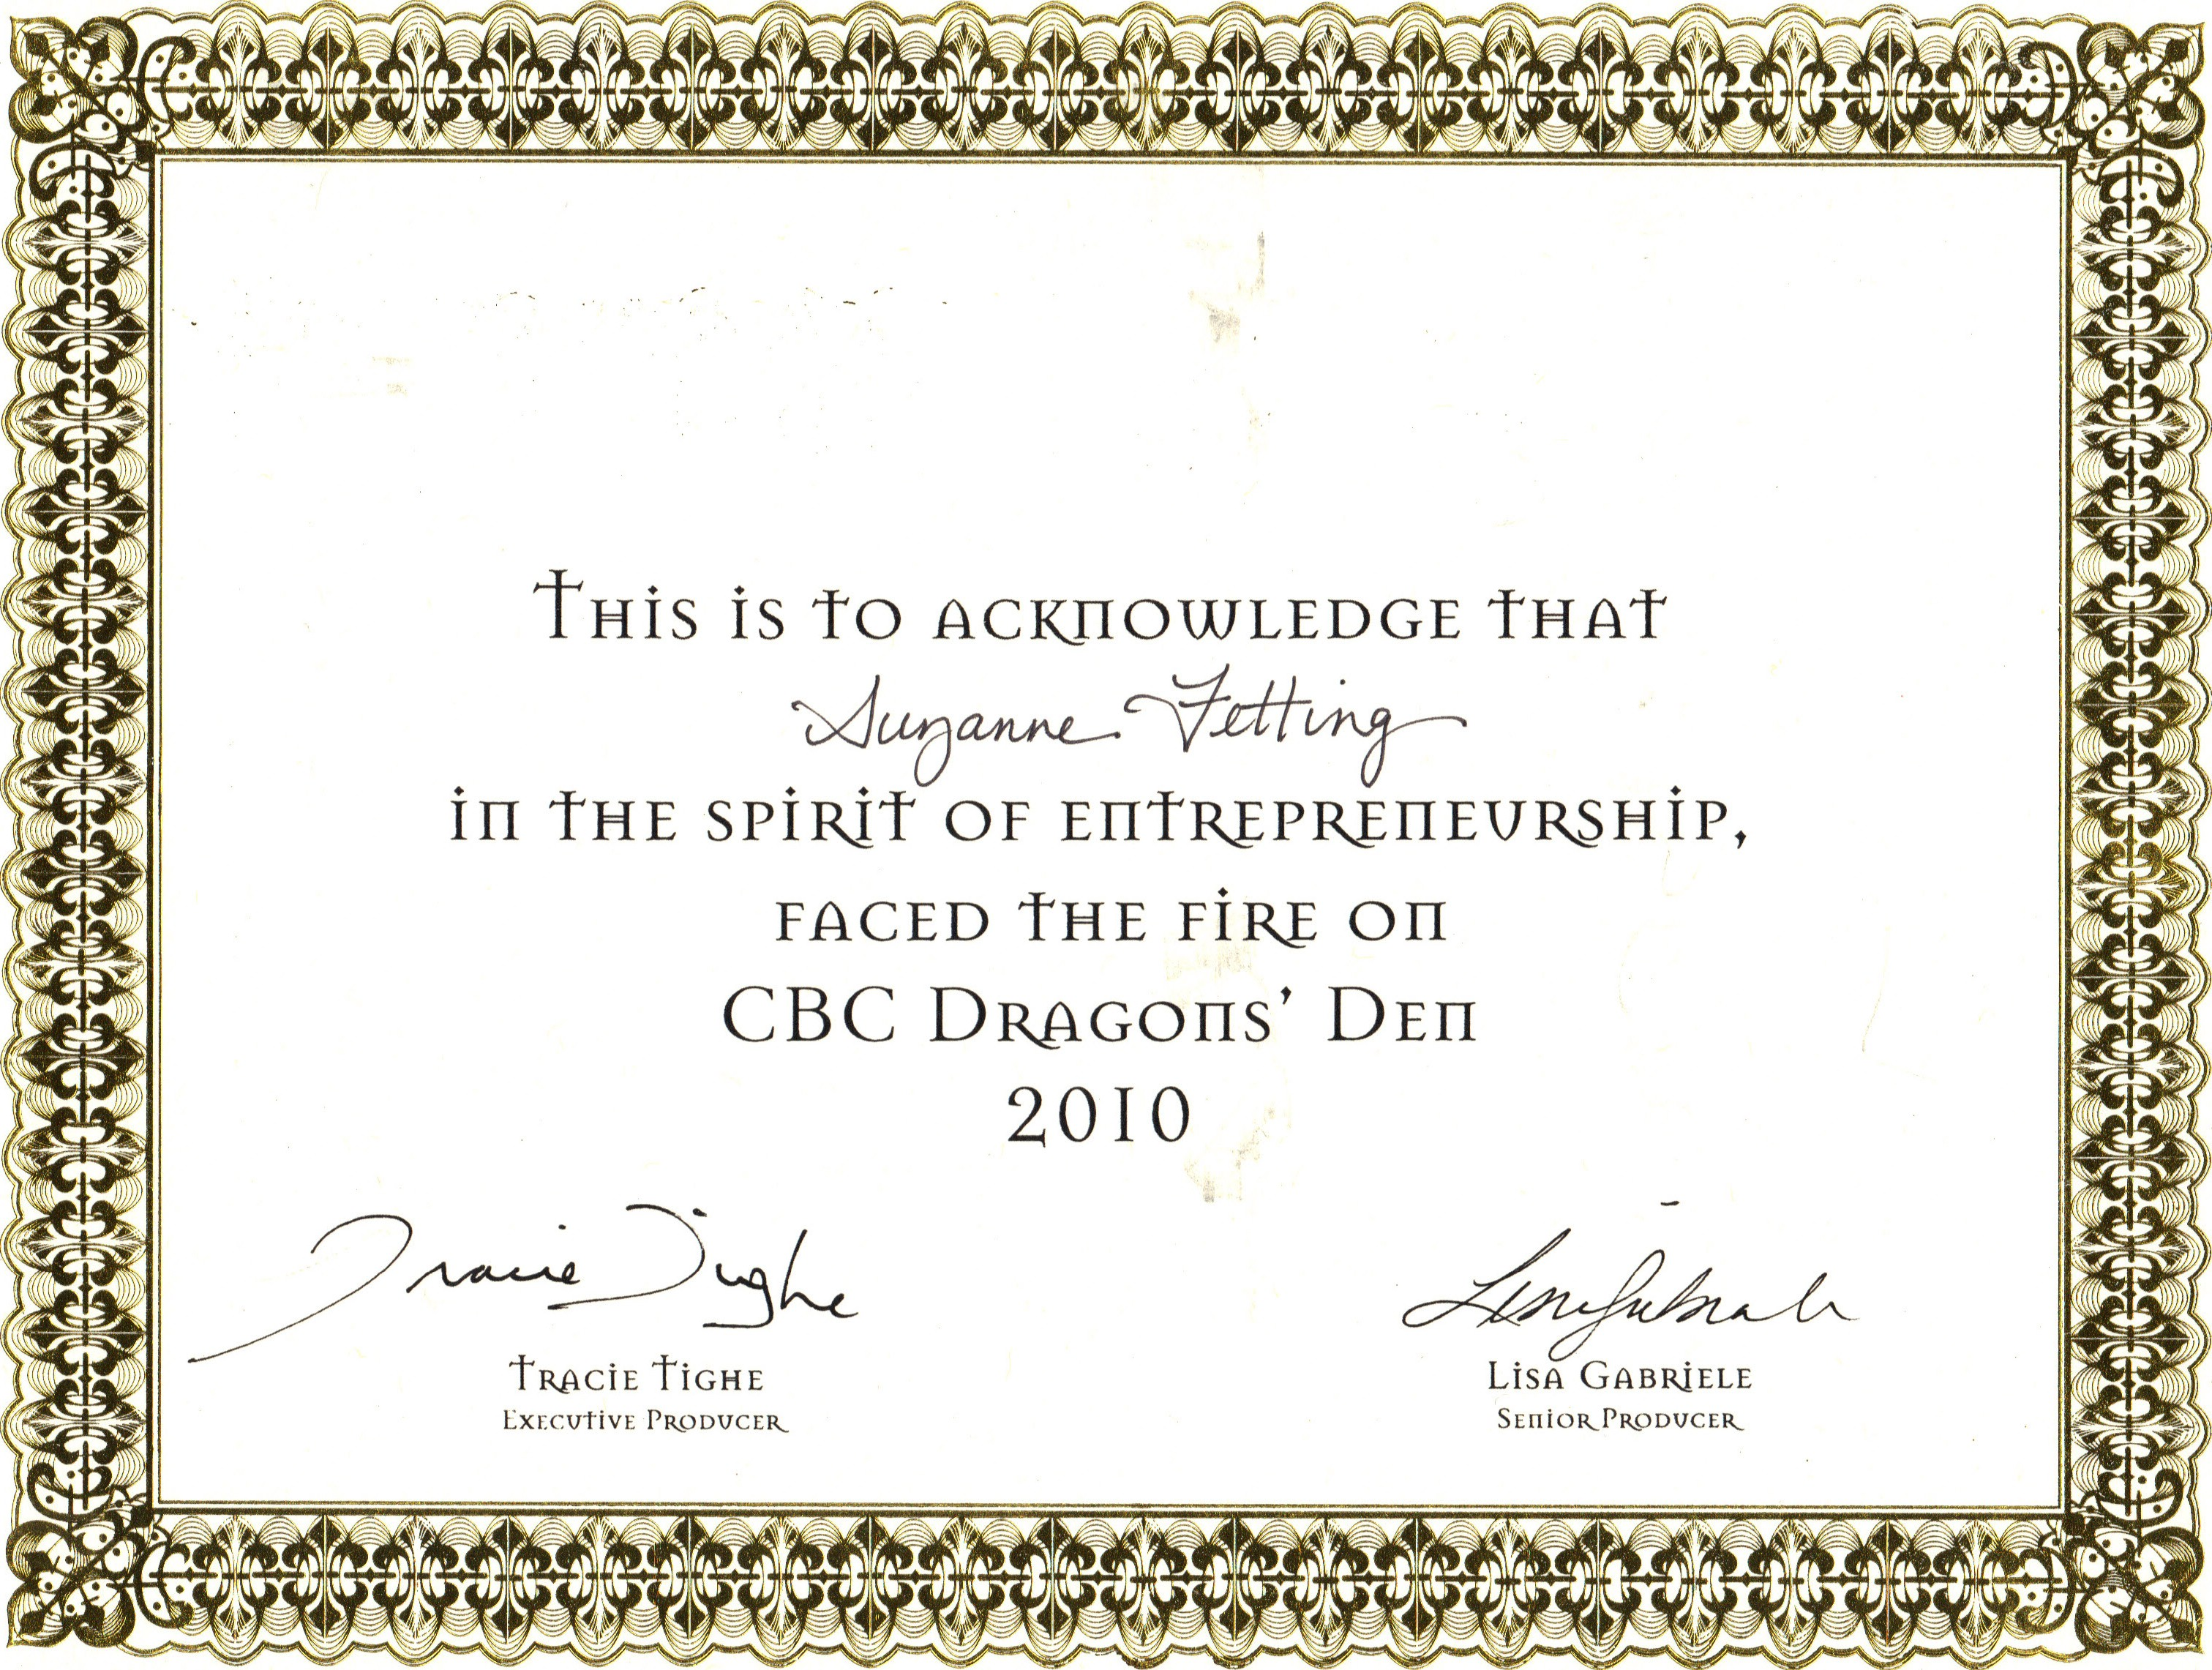 Dragons Den Certificate Absolute Confidence